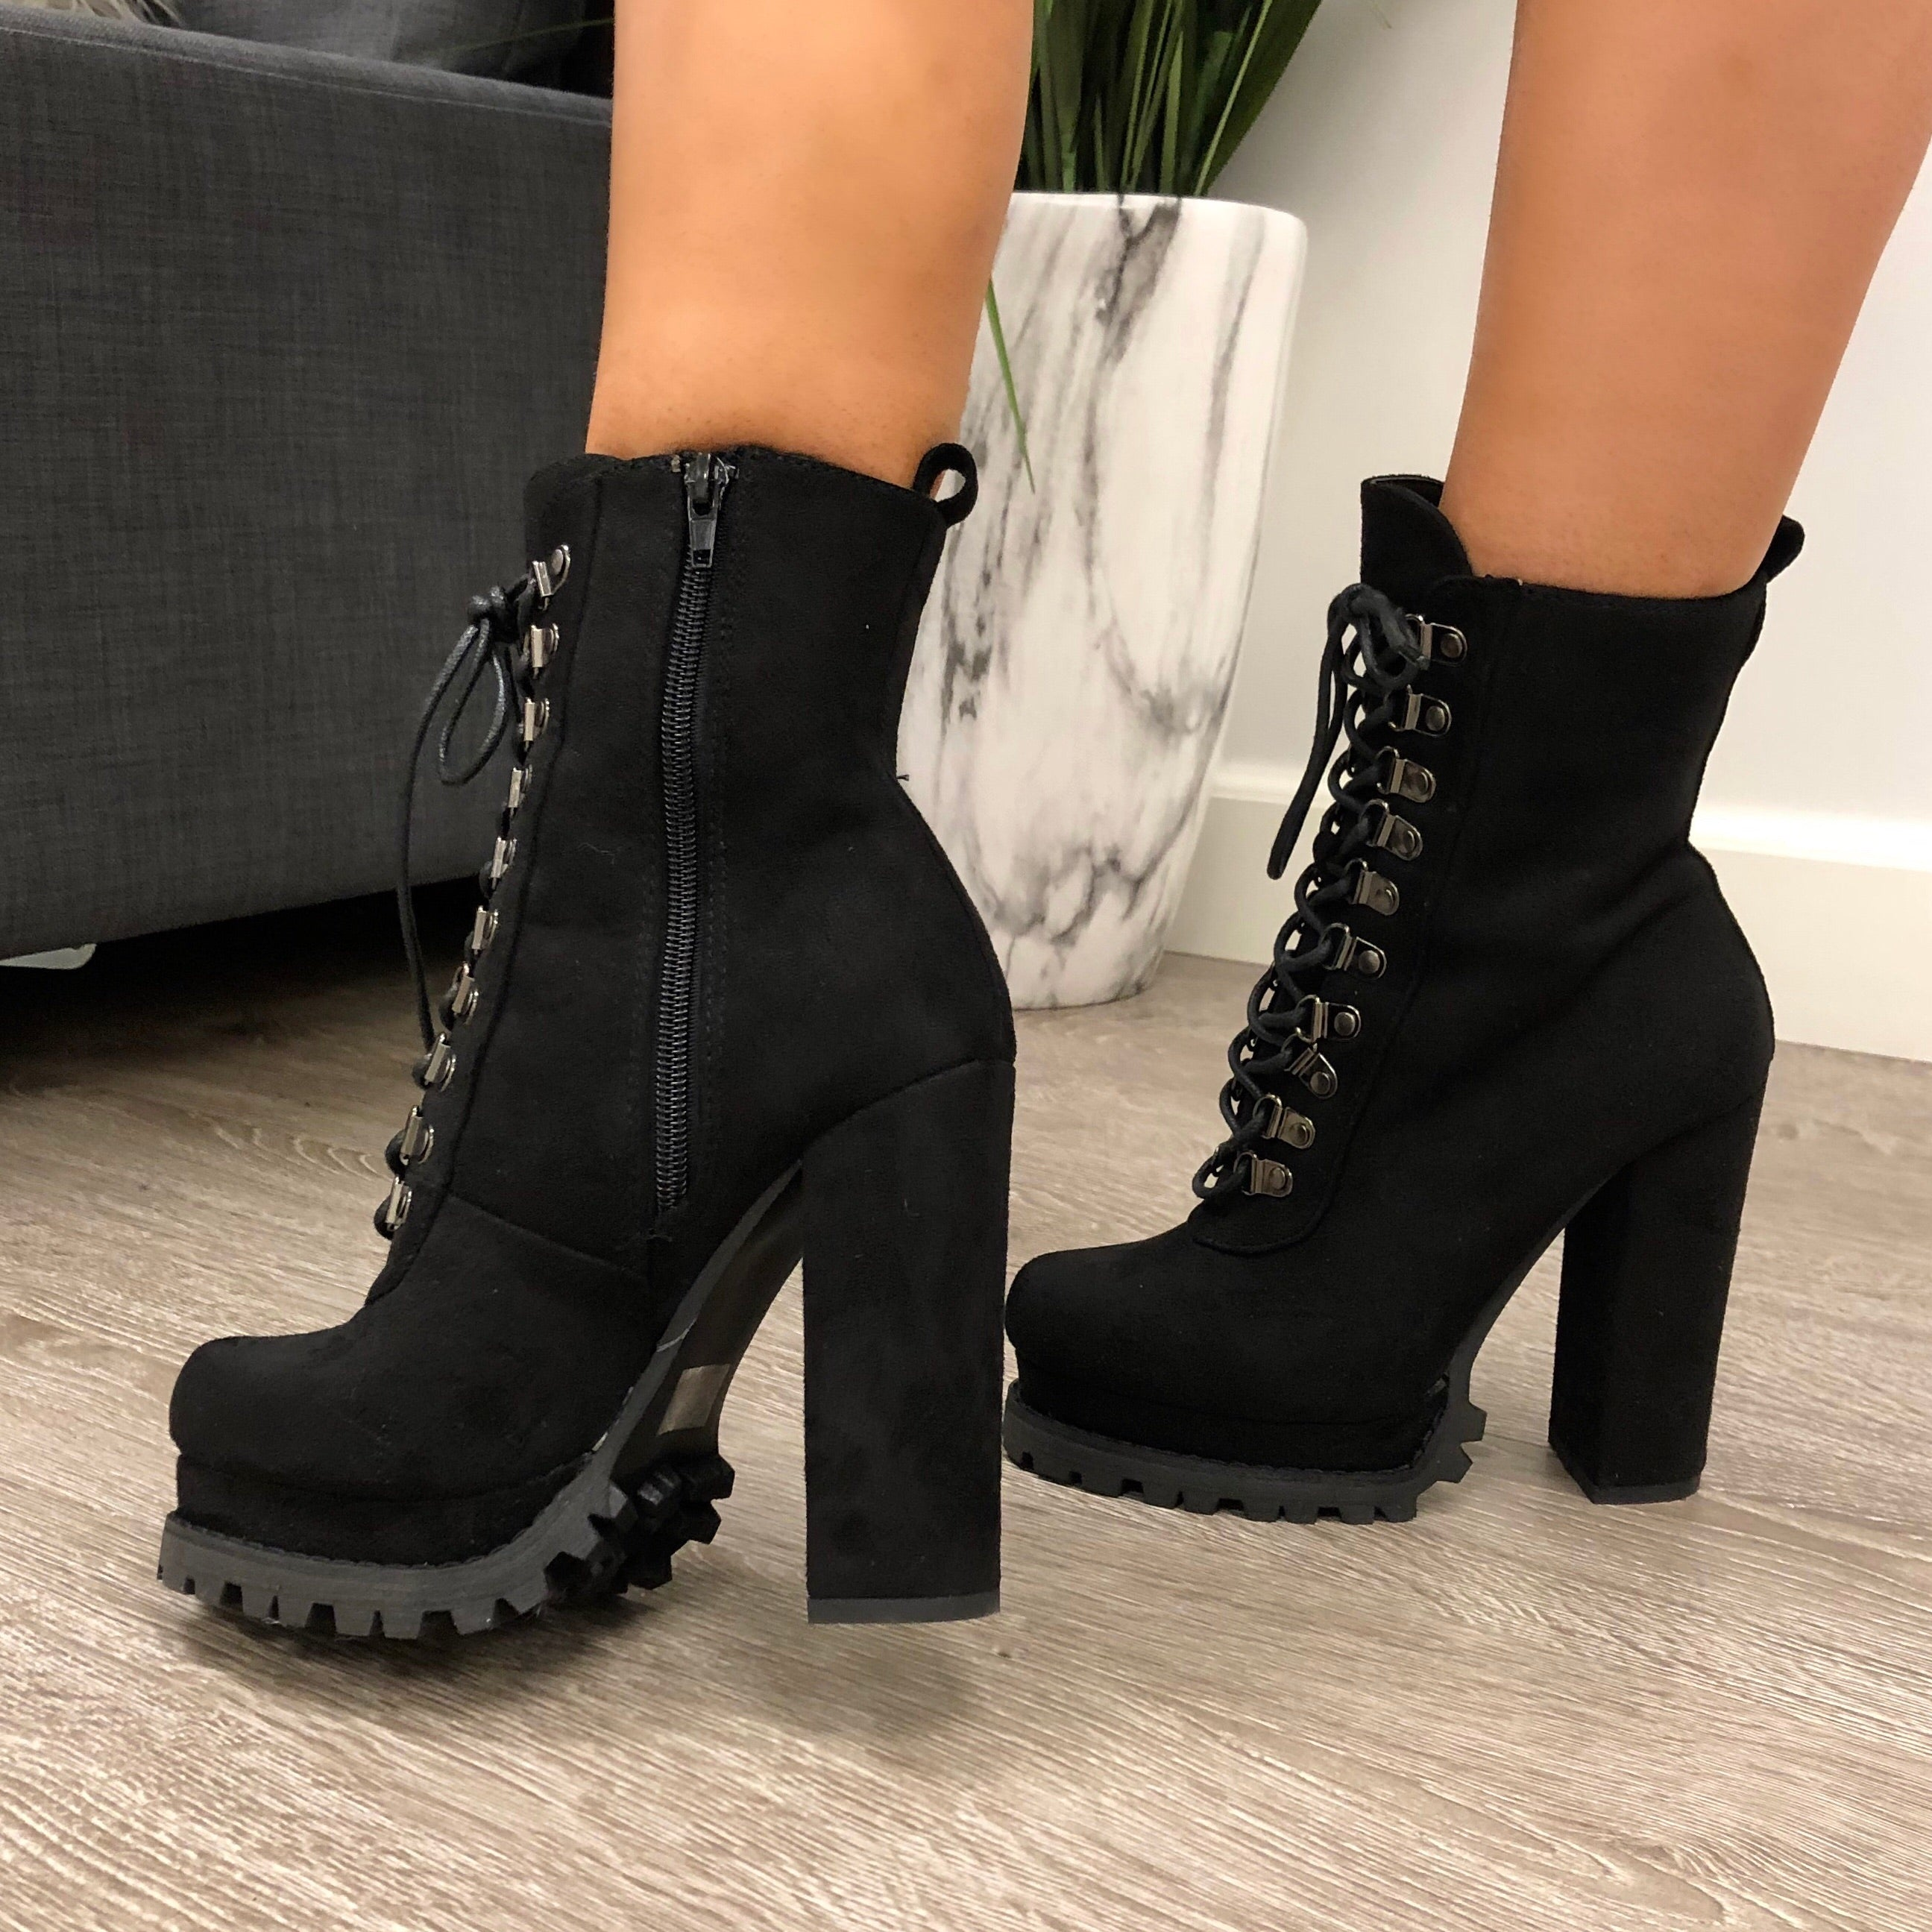 Black tall bootie about 4 inches tall. Has a lace up on the front. Can be worn with shorts or jeans.